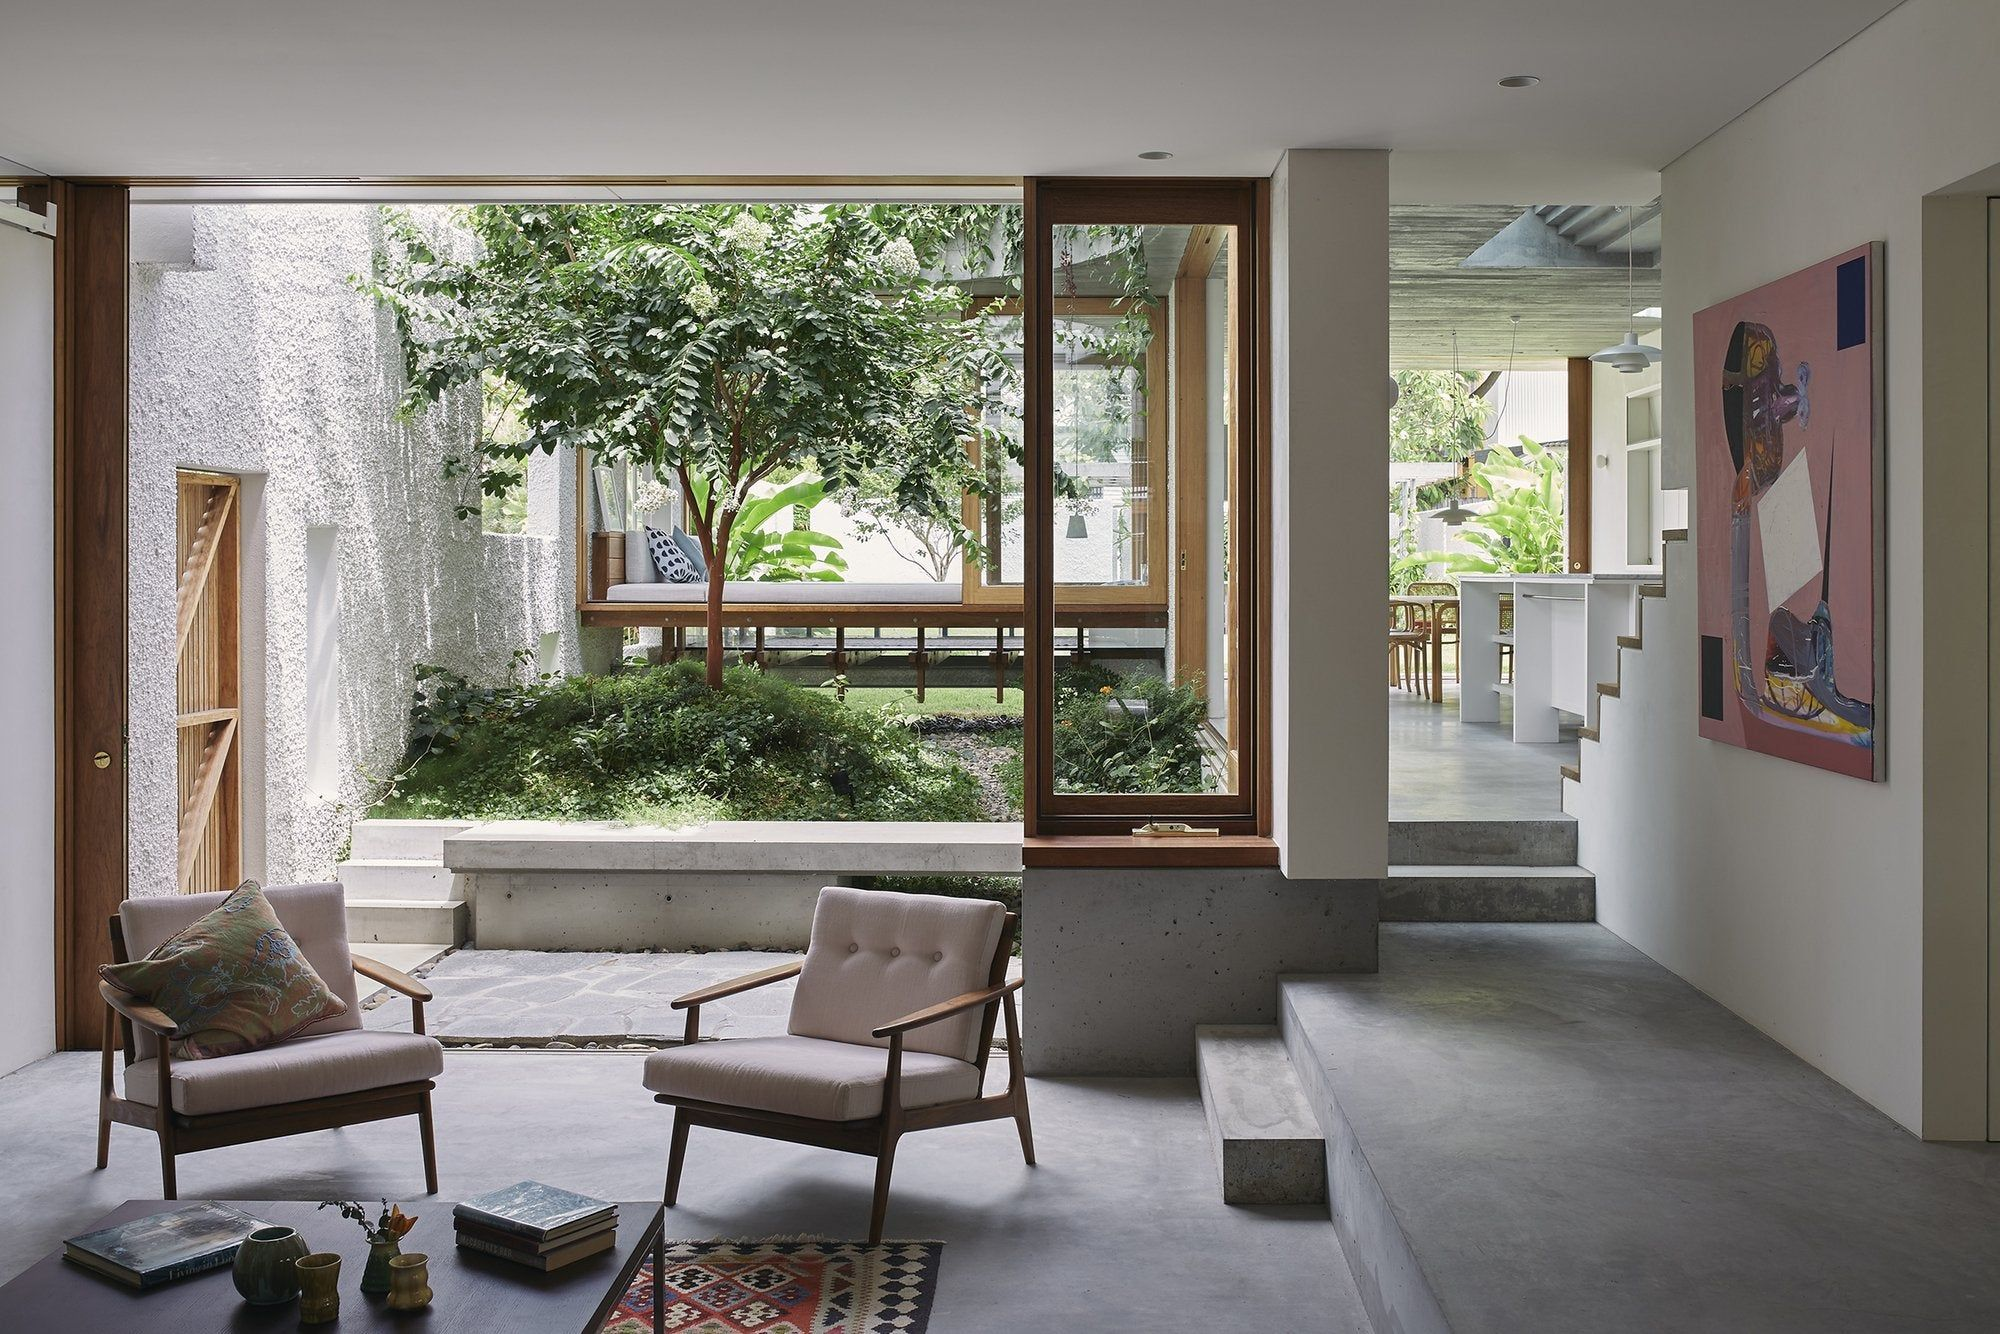 Photo of Breezy open air living spaces centered around a small courtyard garden with a kitchen opening…